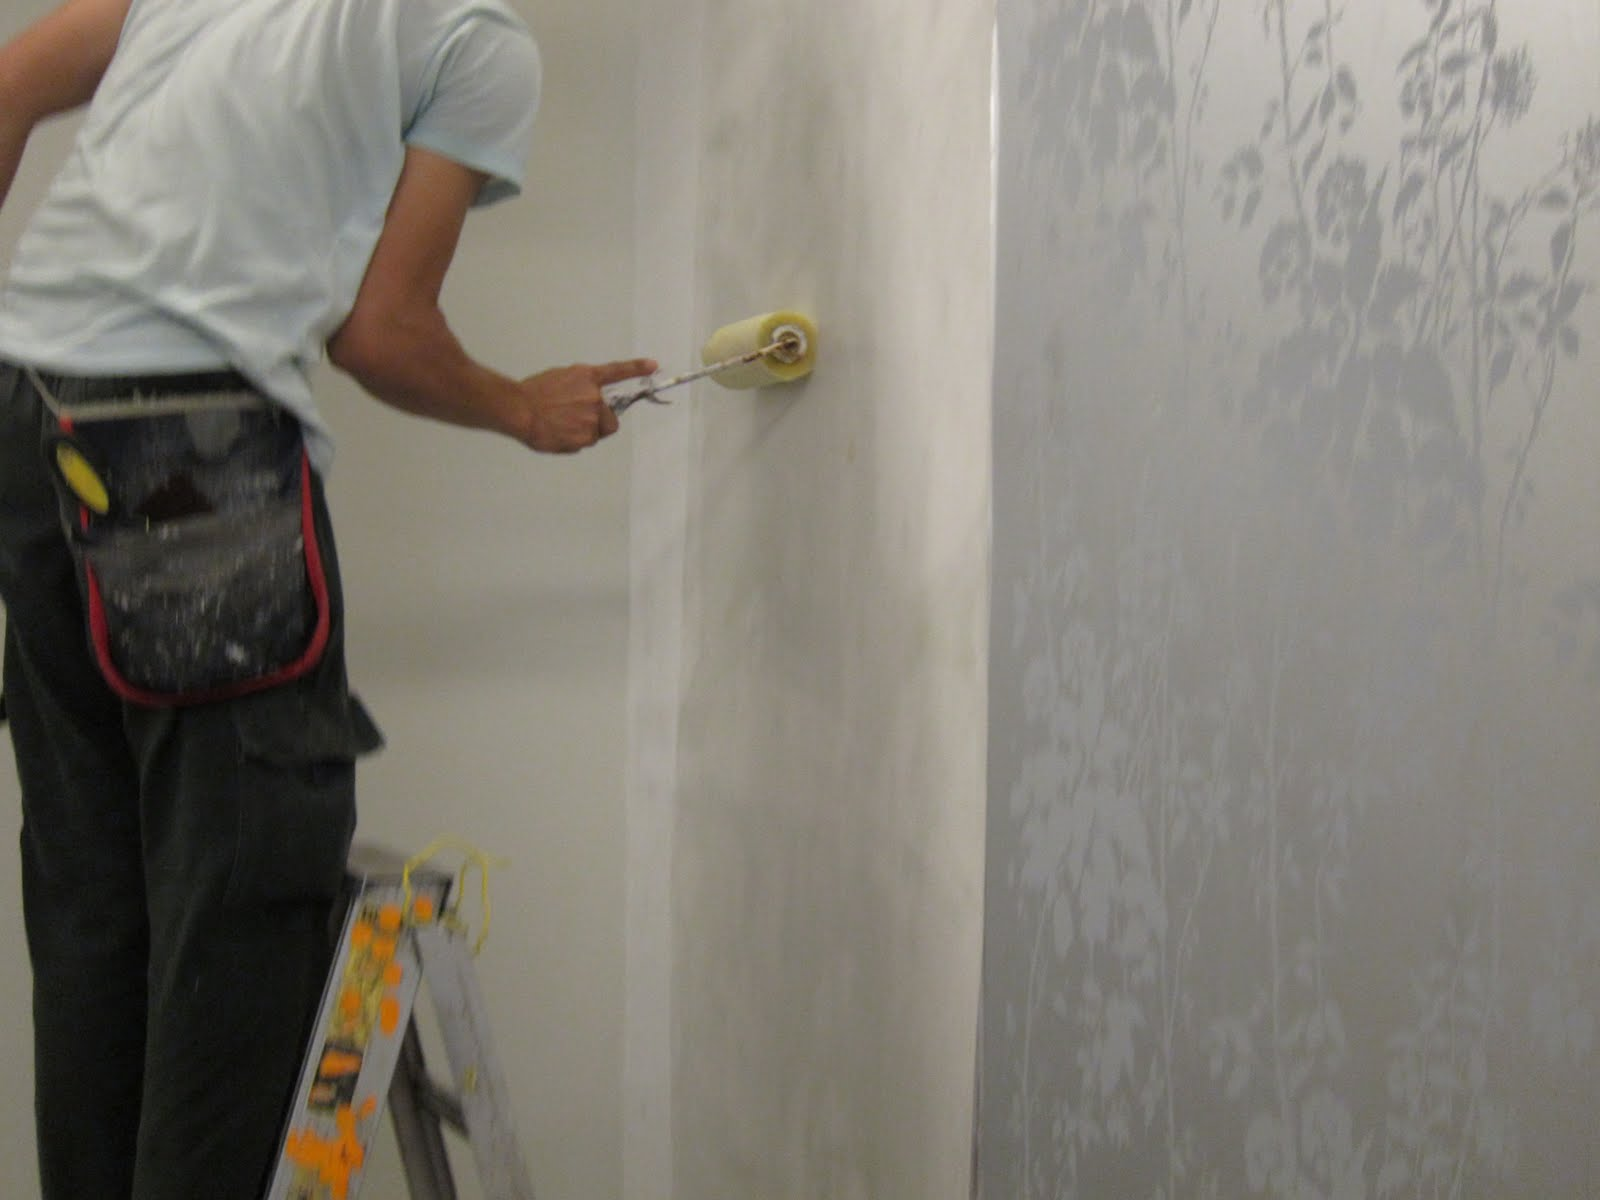 Some professionals may choose to apply glue directly on the wall This 1600x1200